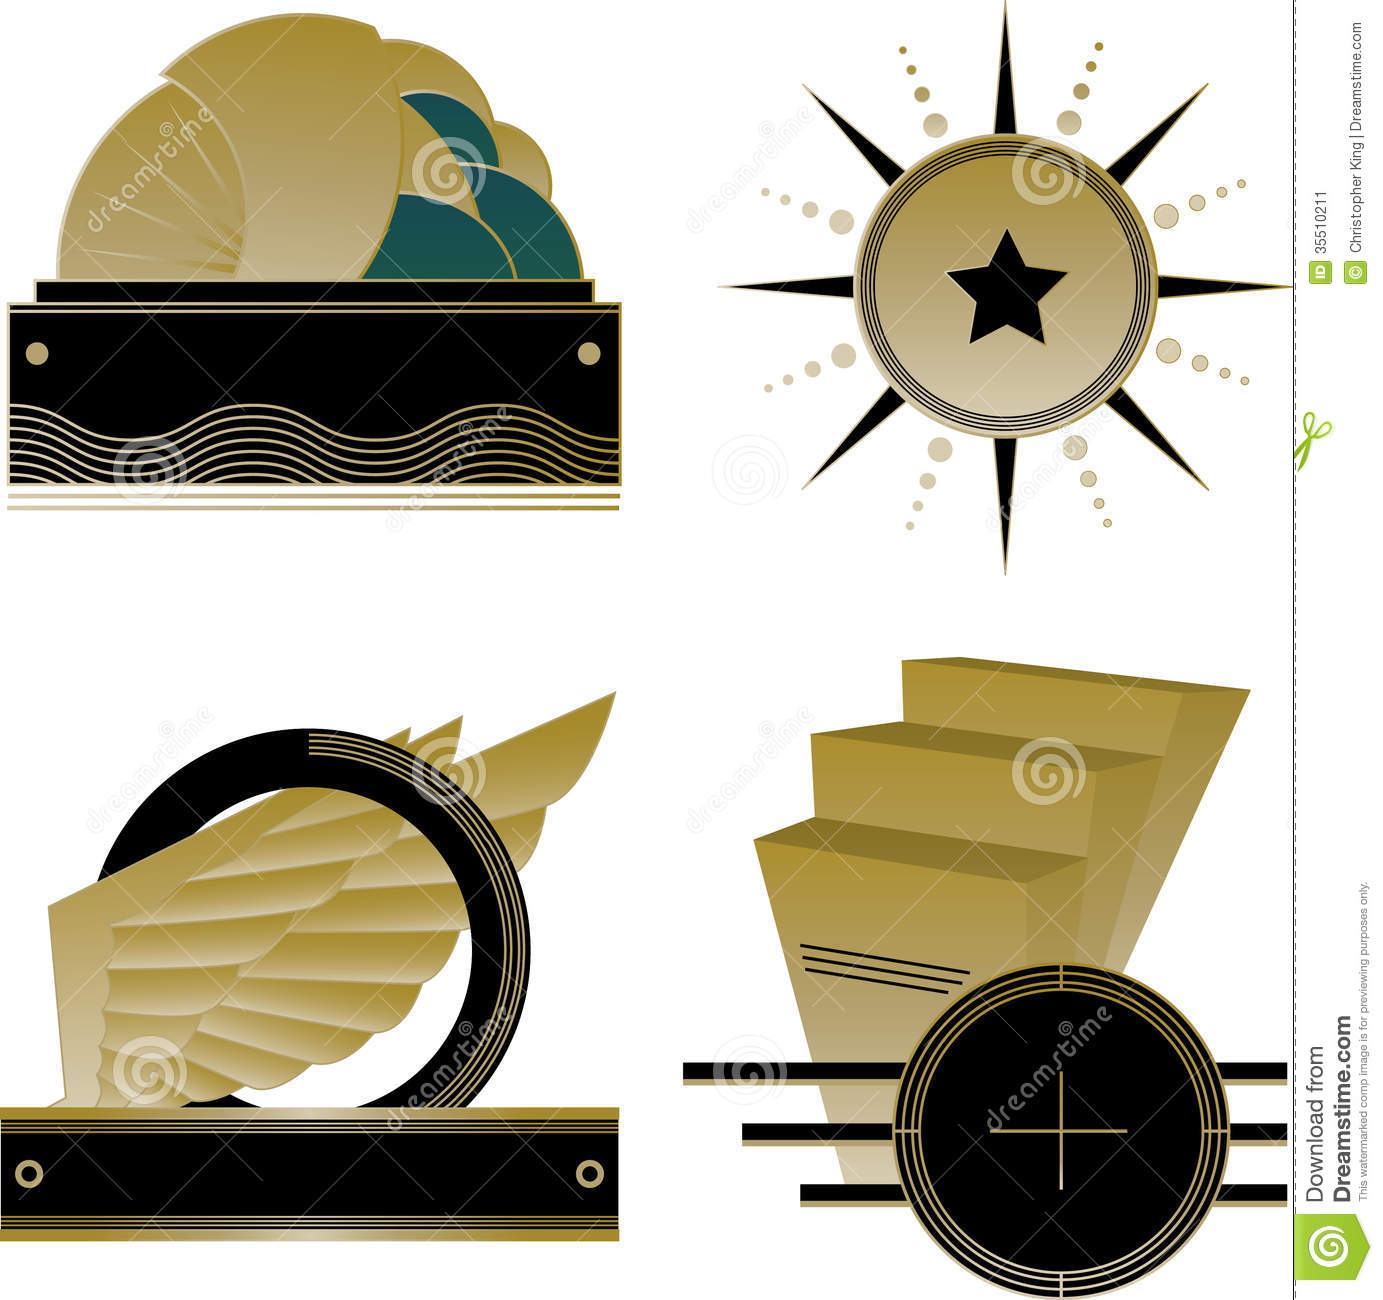 Art deco logos and design elements stock image image for Deco 5 elements